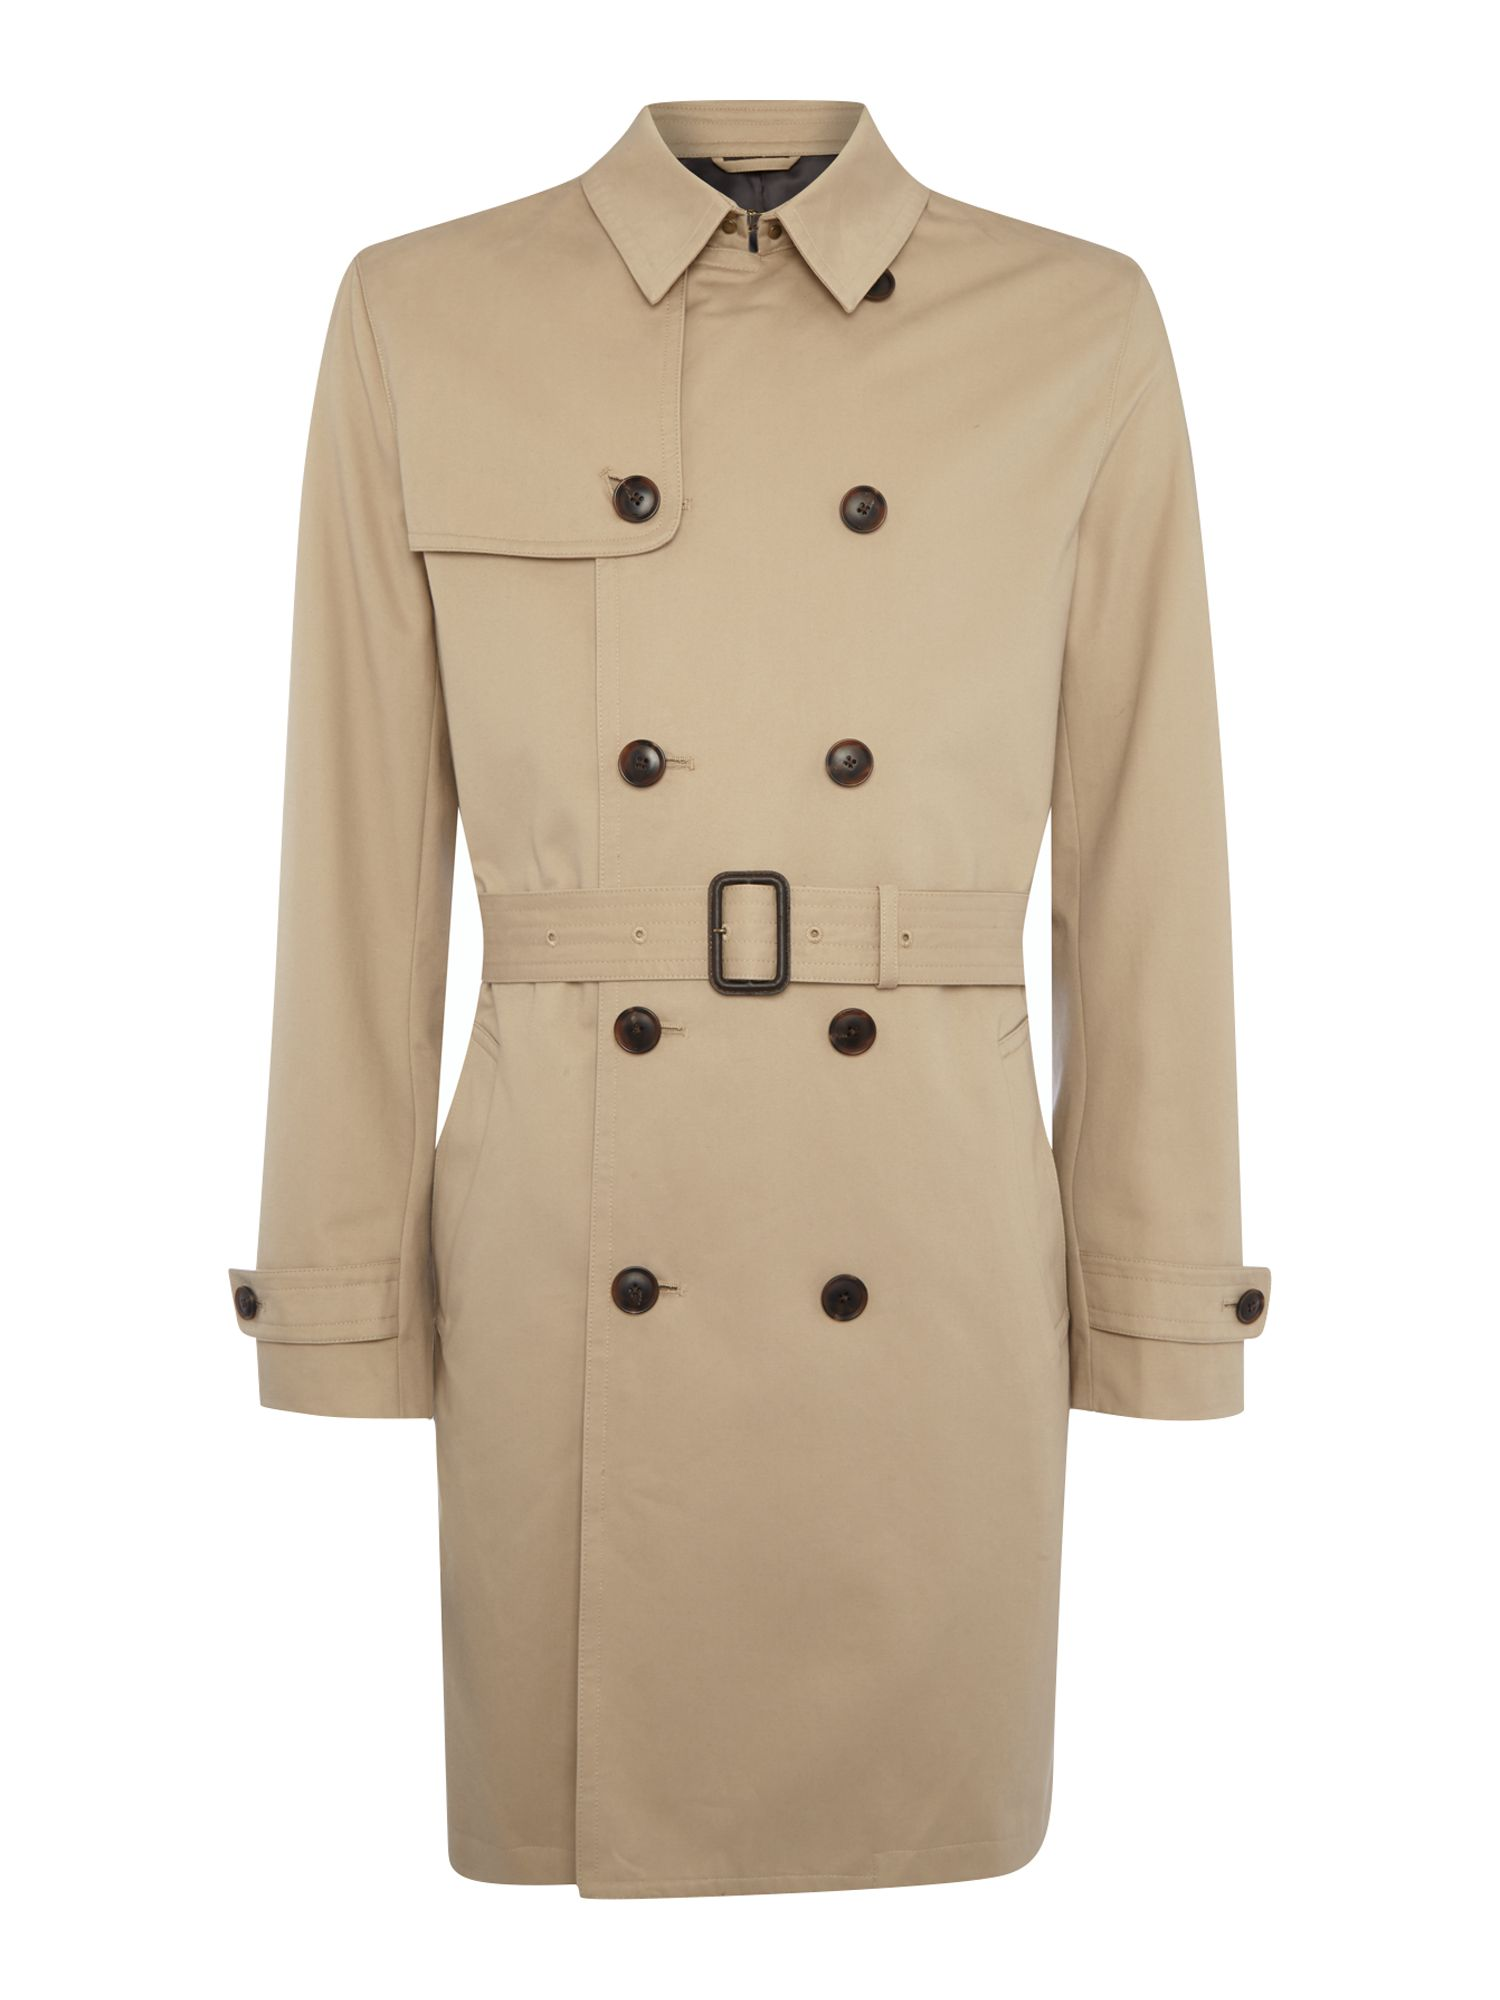 Men's Vintage Style Coats and Jackets Mens Howick Tailored Dale classic trench coat Stone £200.00 AT vintagedancer.com